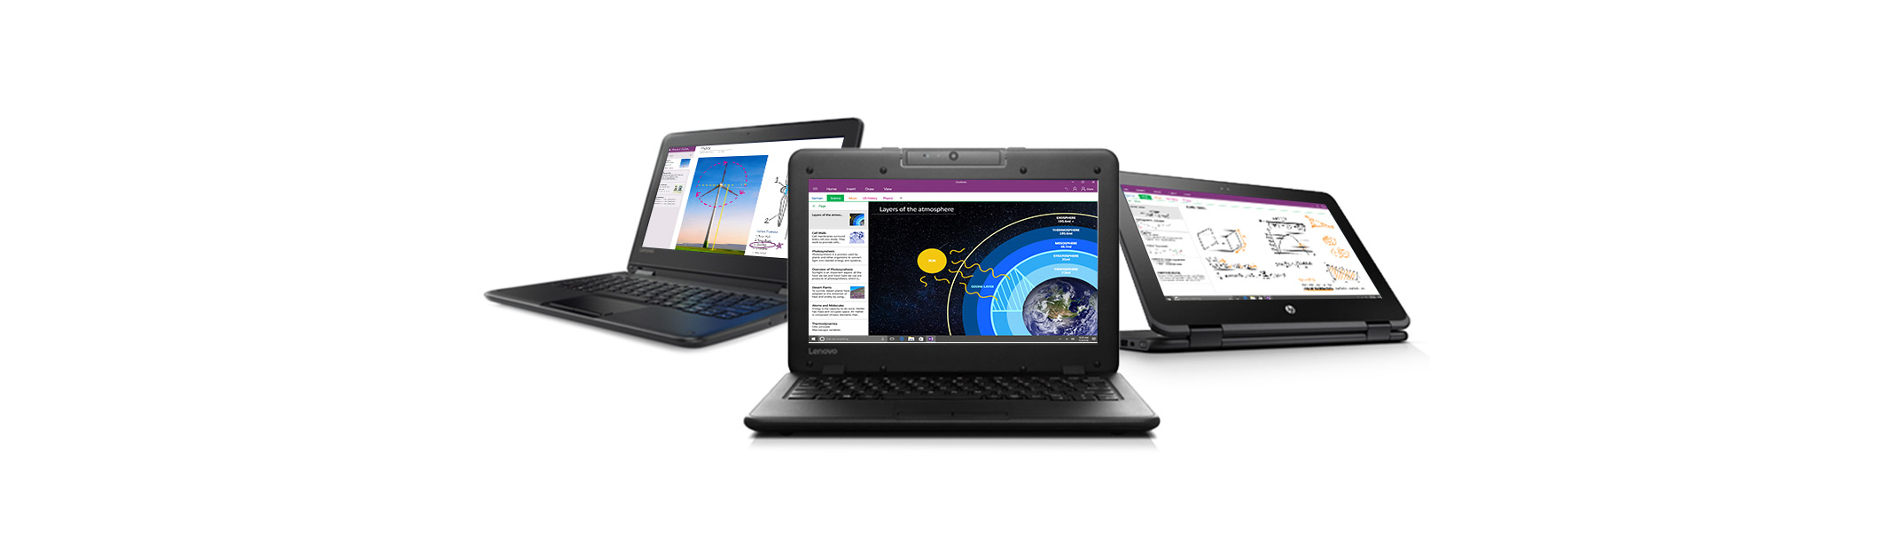 three windows devices each at different angles and showing a different windows product on the screen.